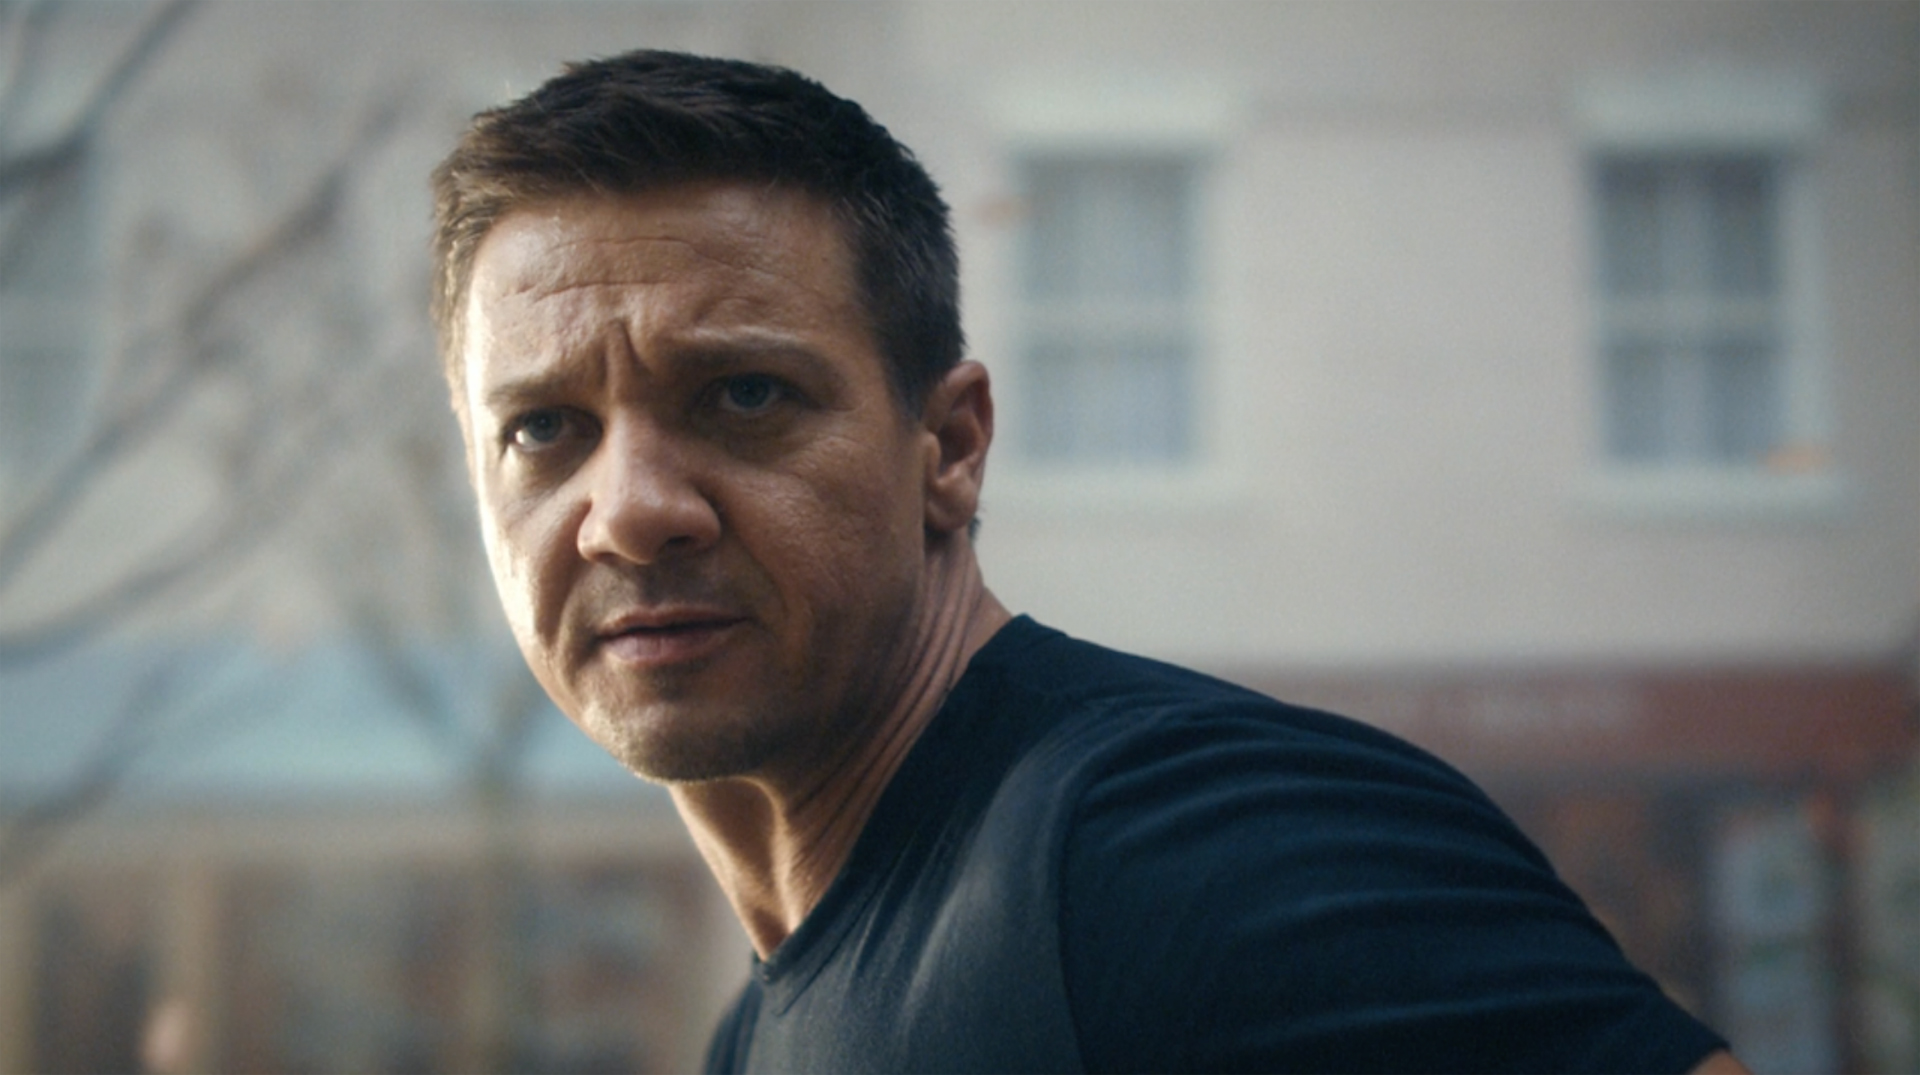 BT Mobile - Jeremy Renner, behind the scenes